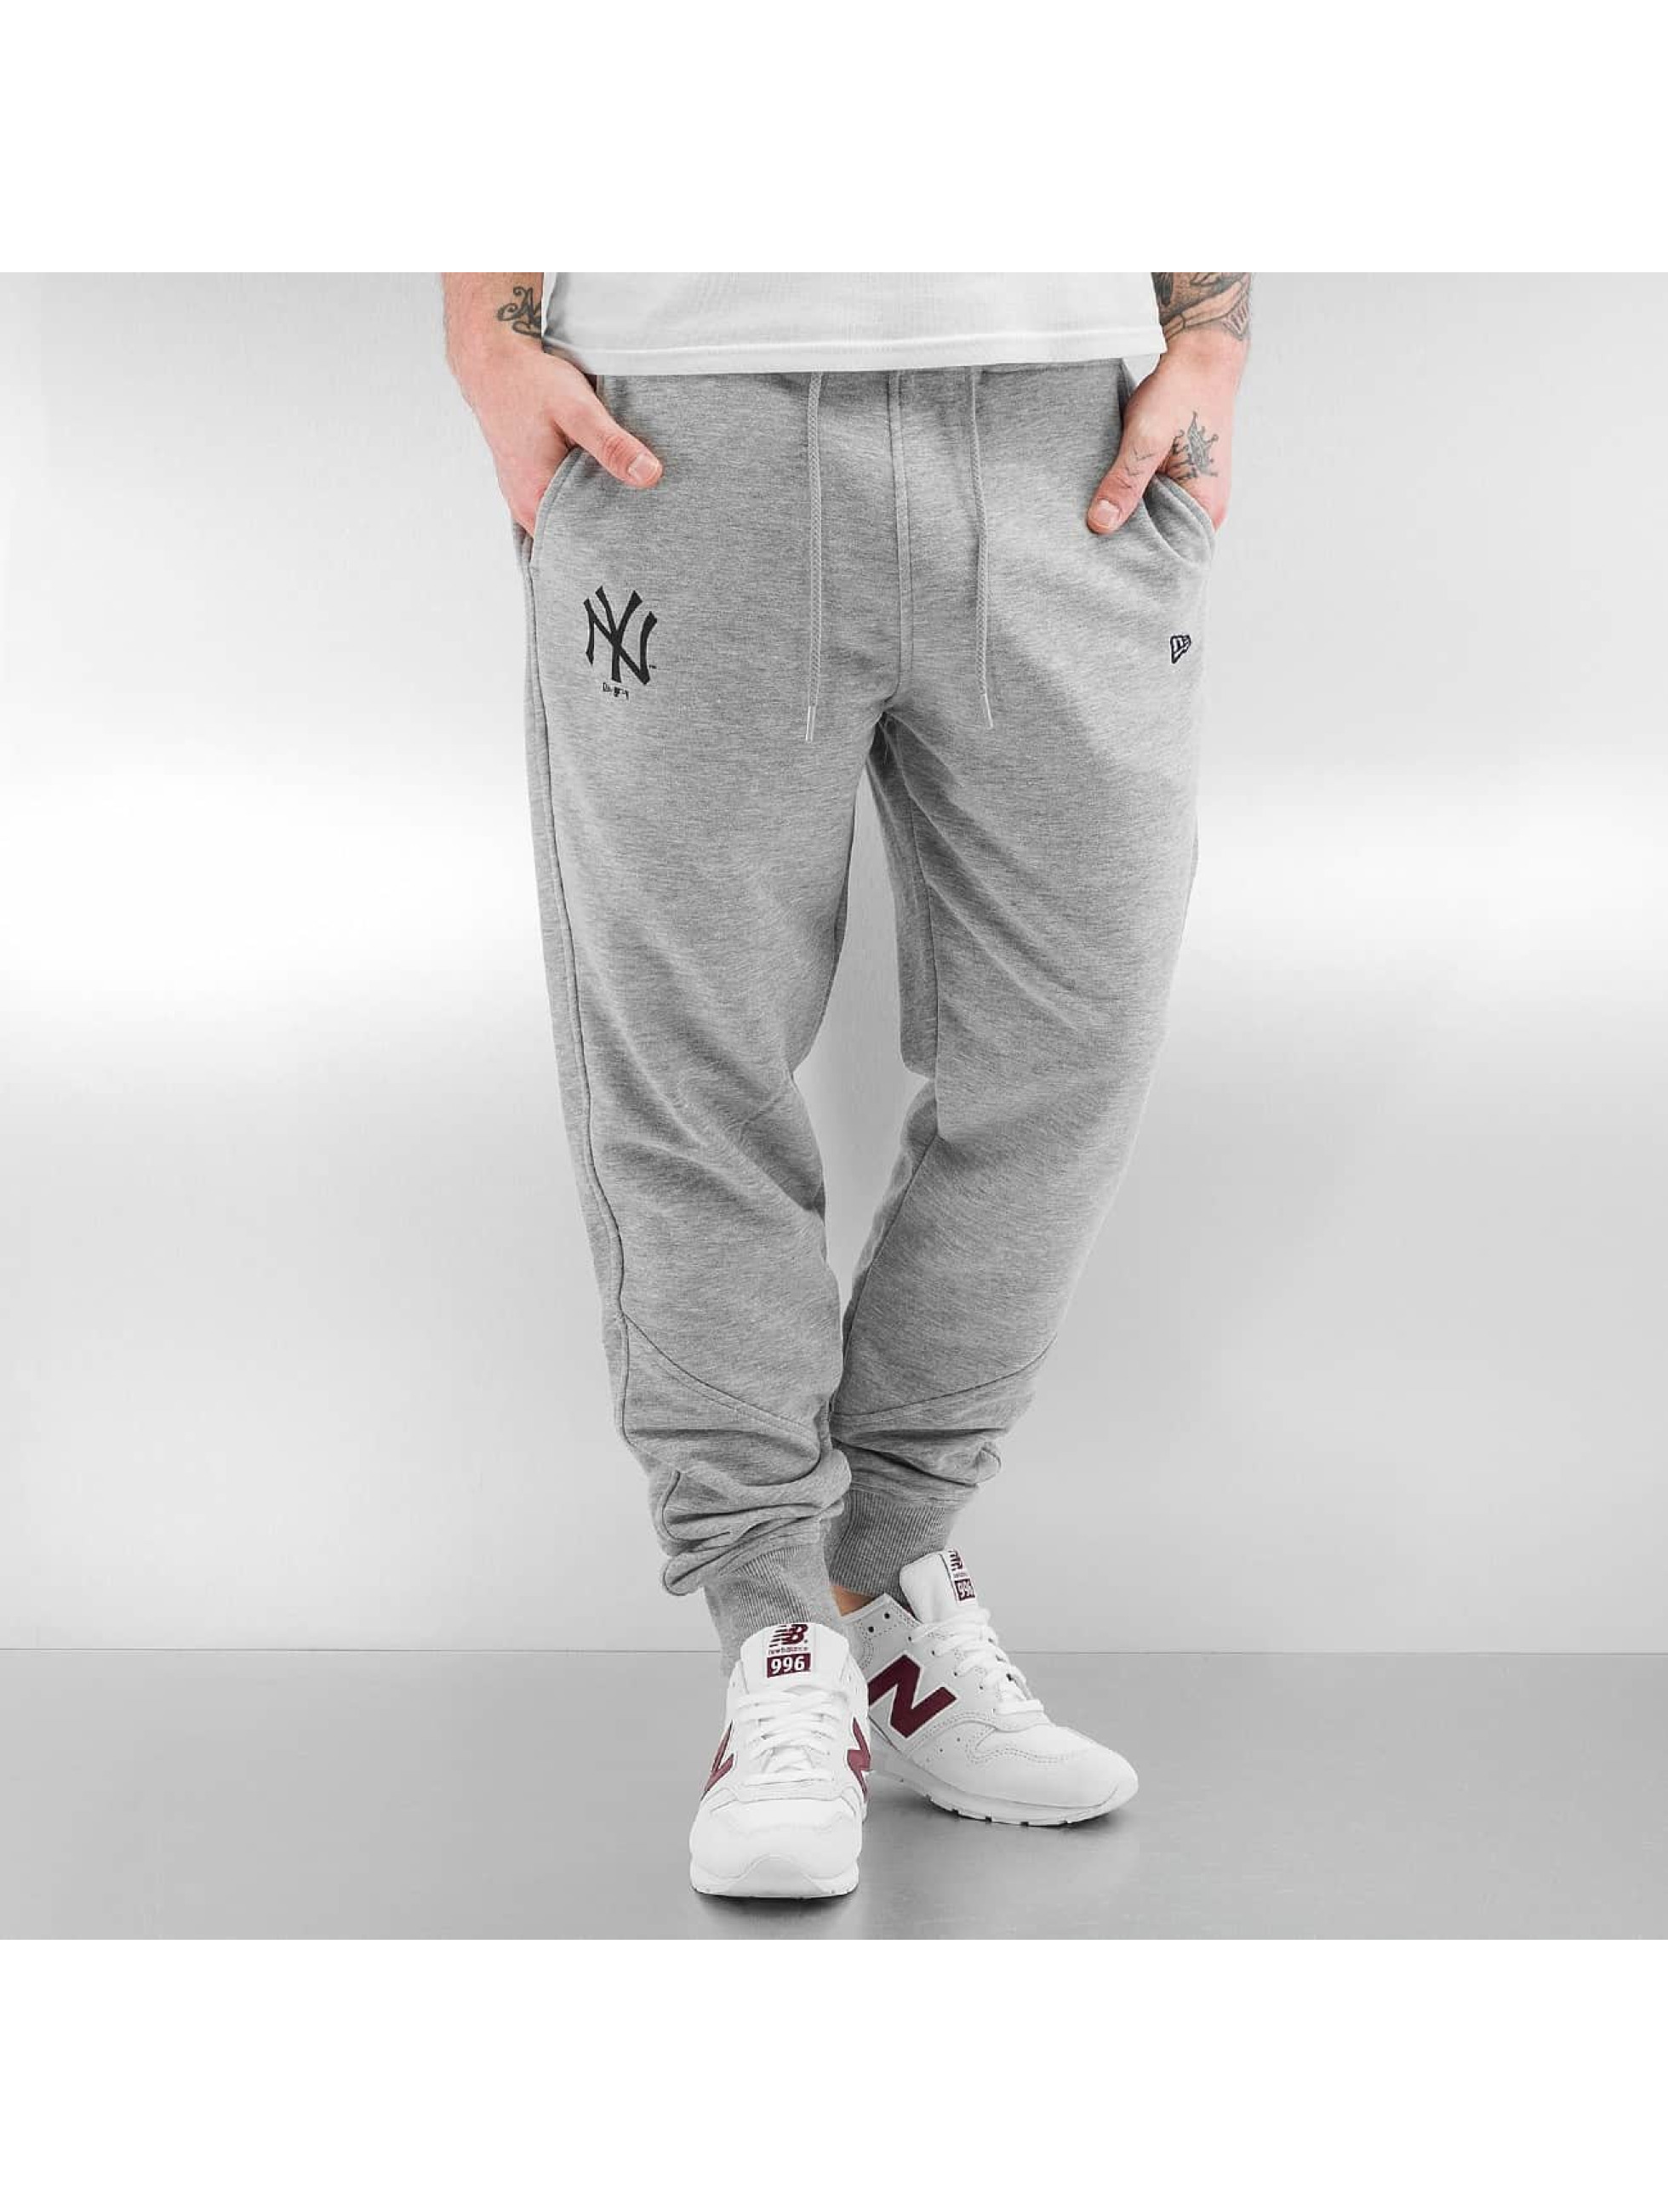 New Era Männer Jogginghose Team Apparel French Terry NY Yankees in grau